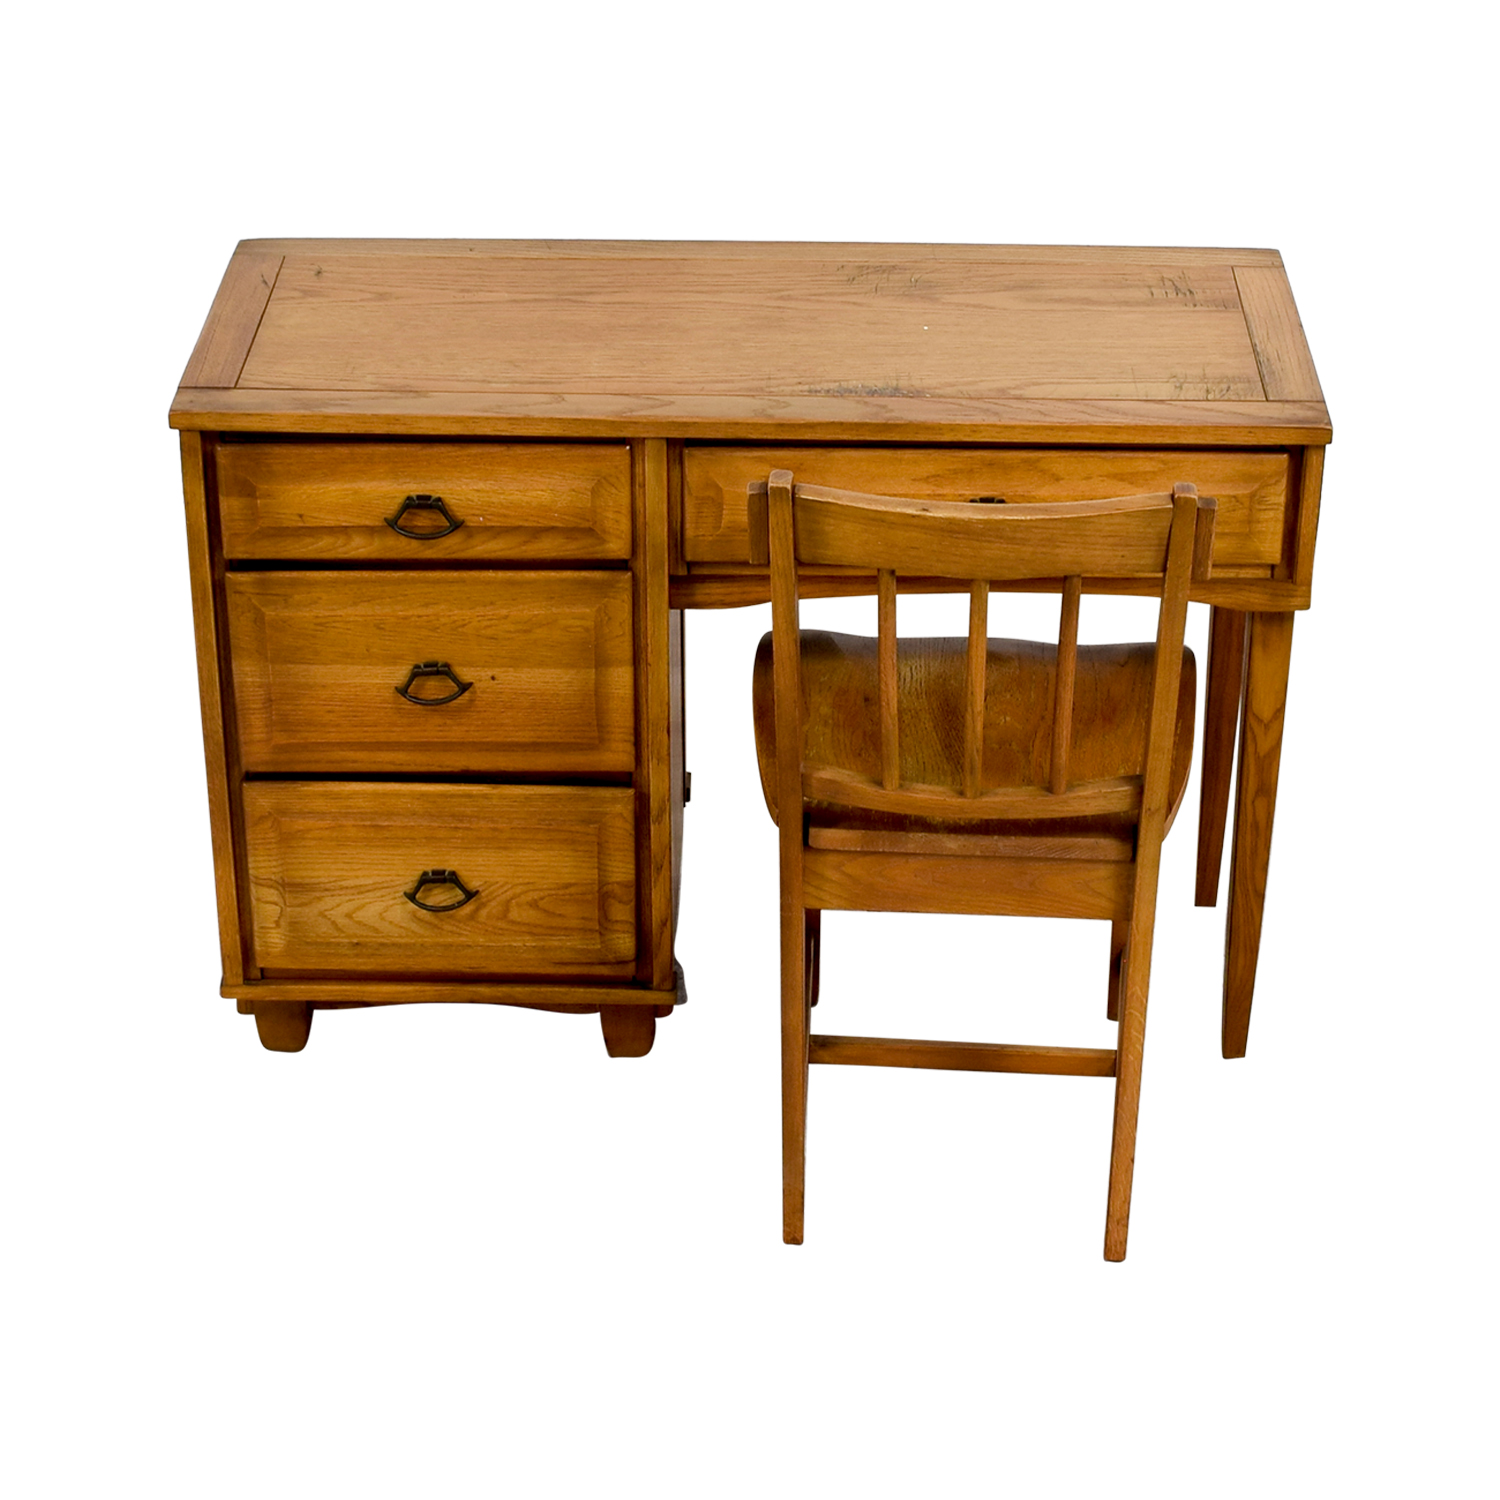 shop Vintage Mid Century Oak Desk with Chair